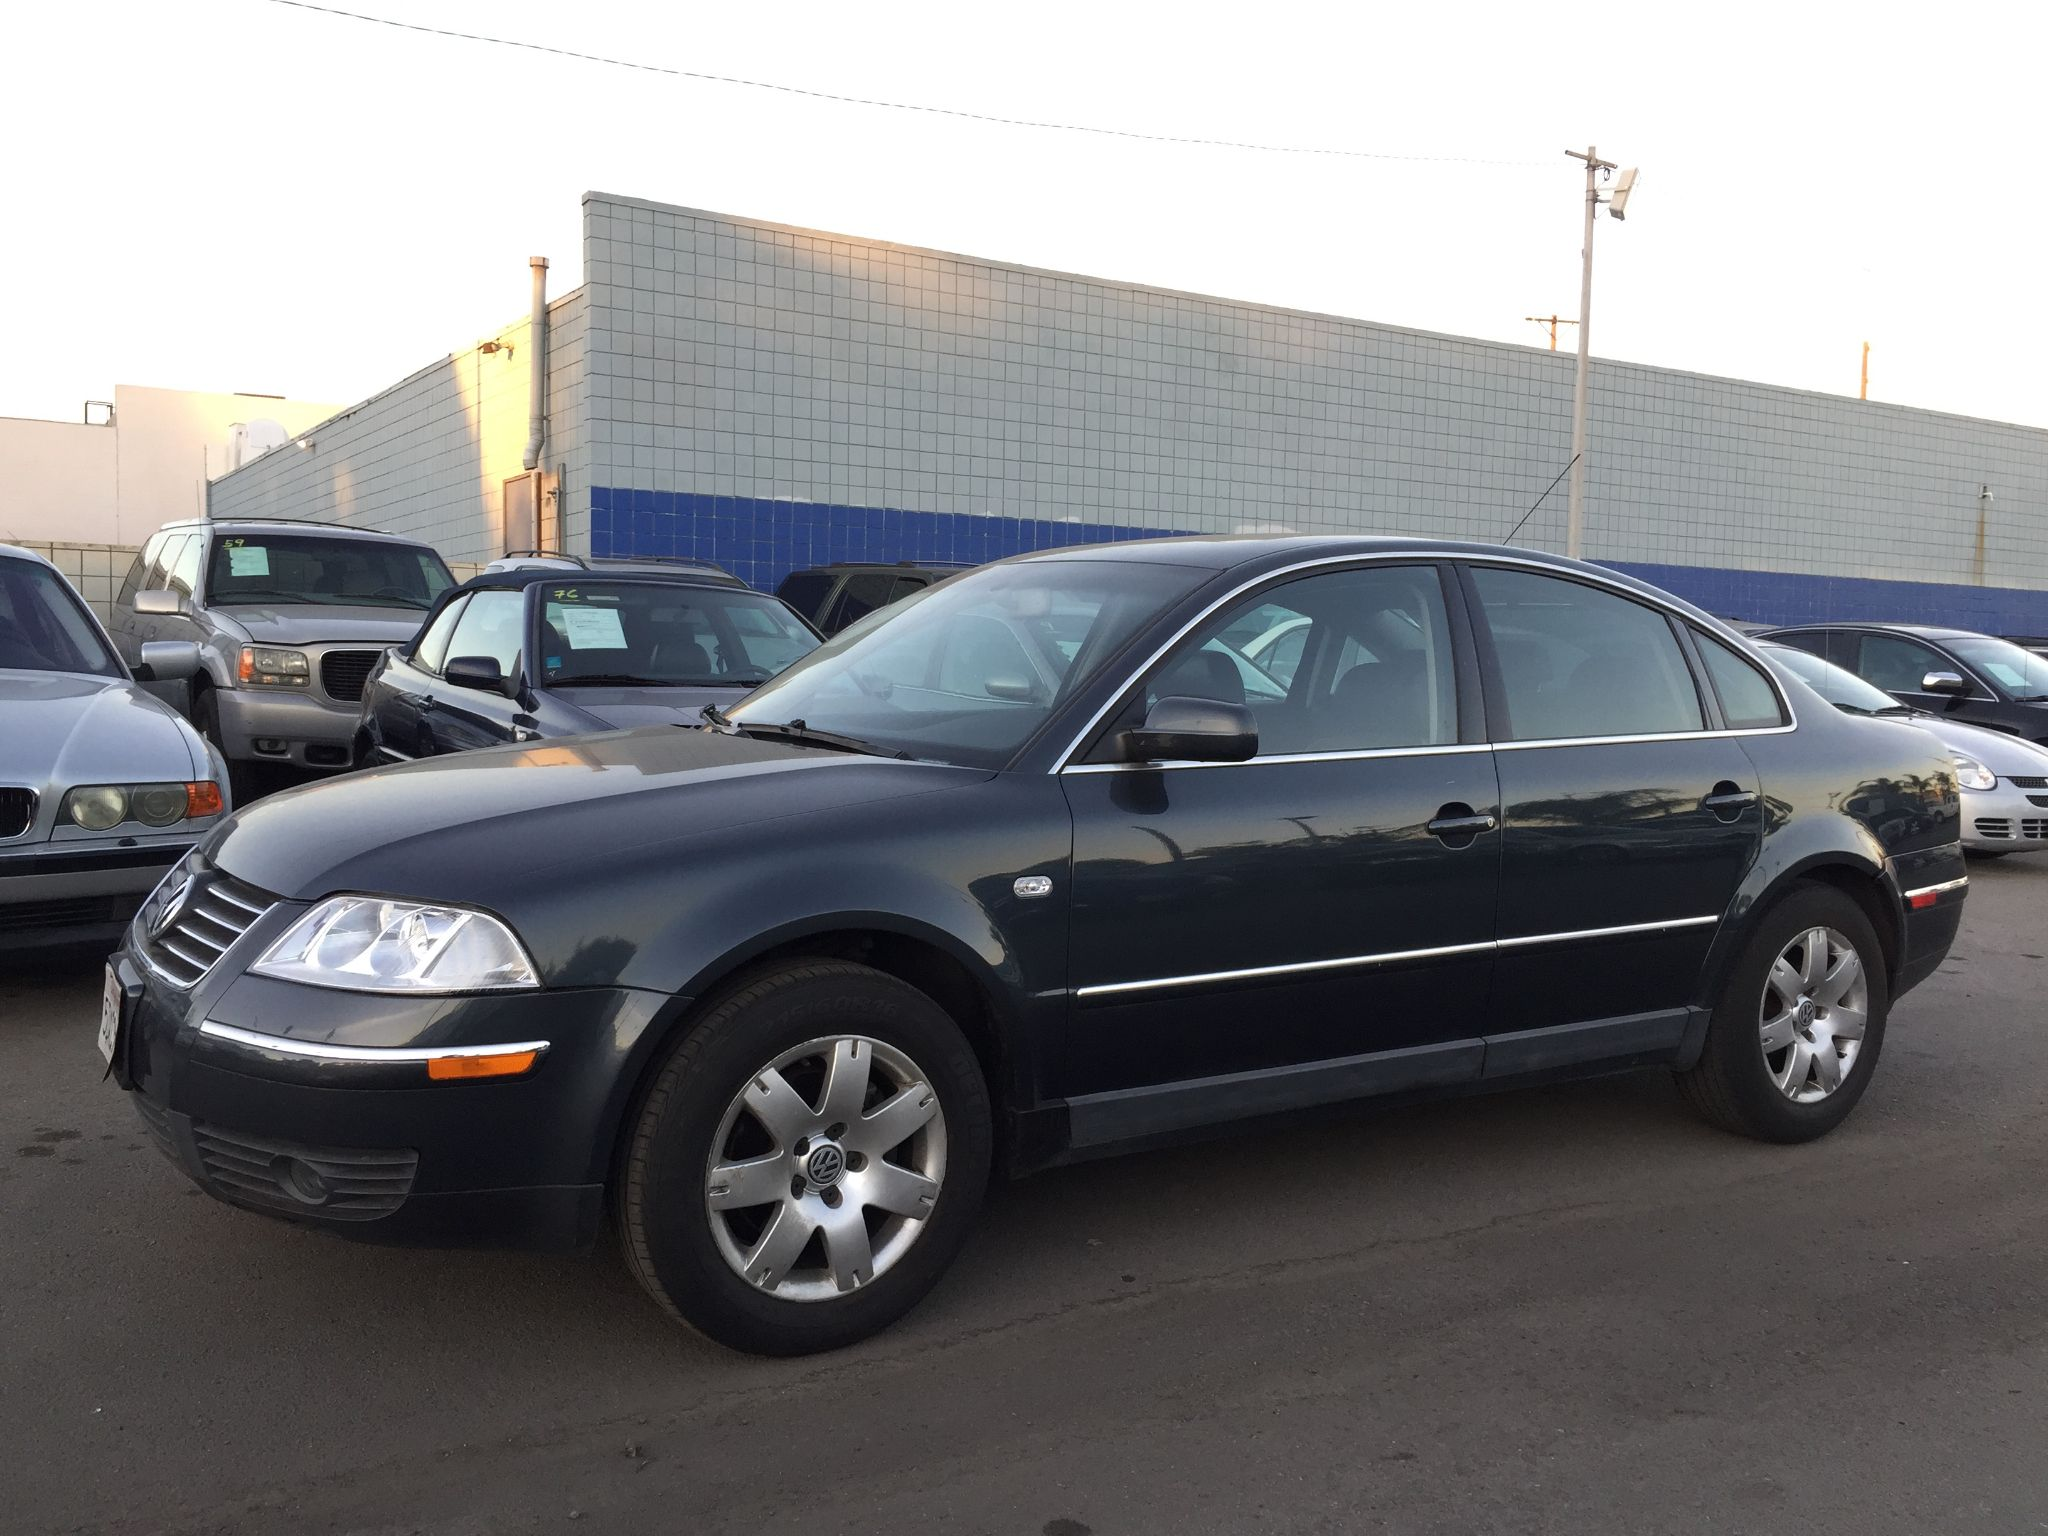 Used 2003 Volkswagen Passat GLX at City Cars Warehouse INC